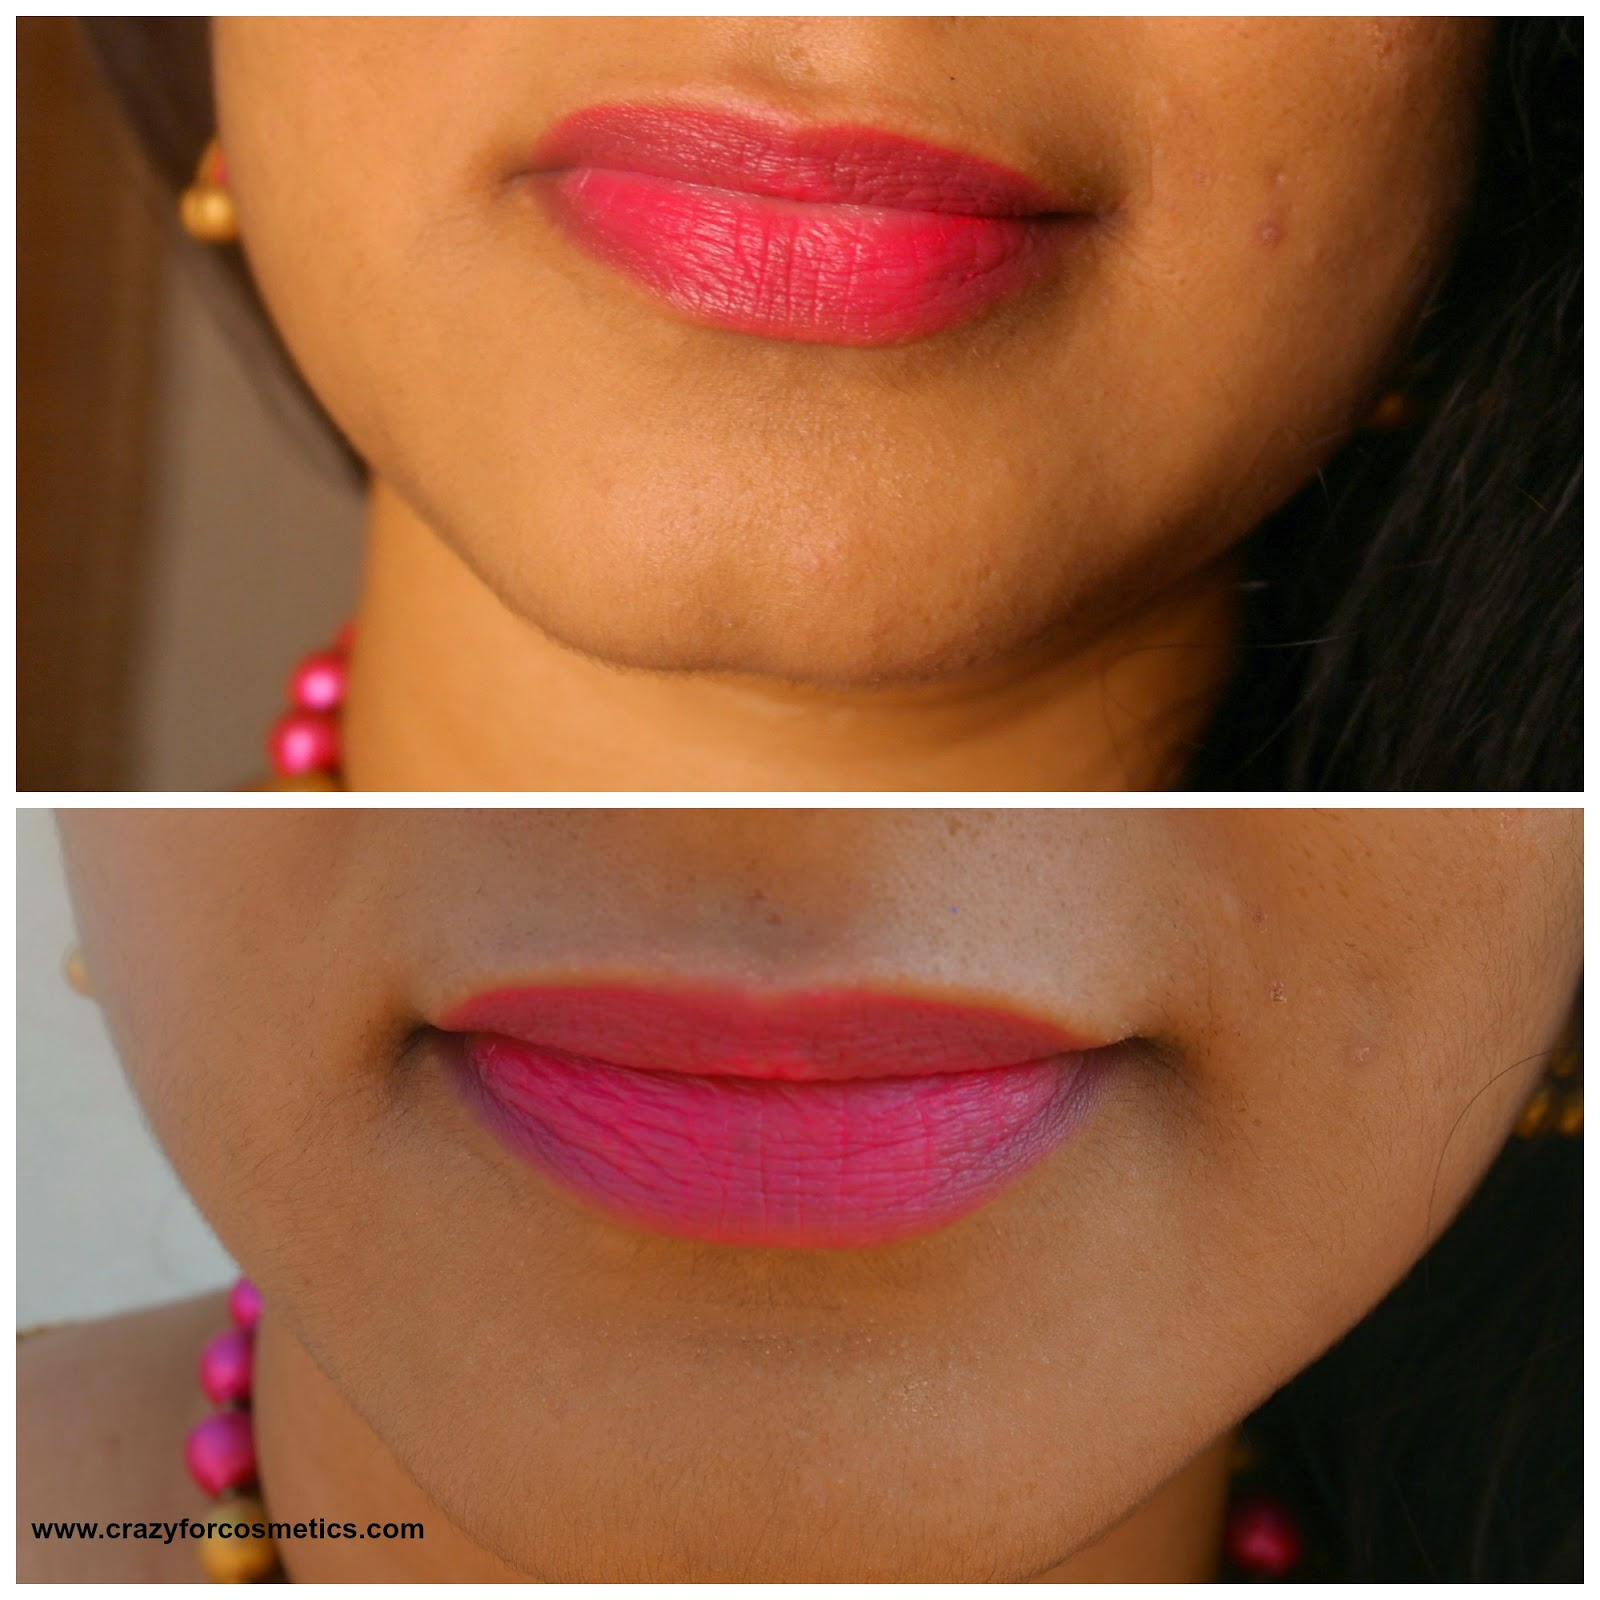 mac impassioned lipstick lip swatch